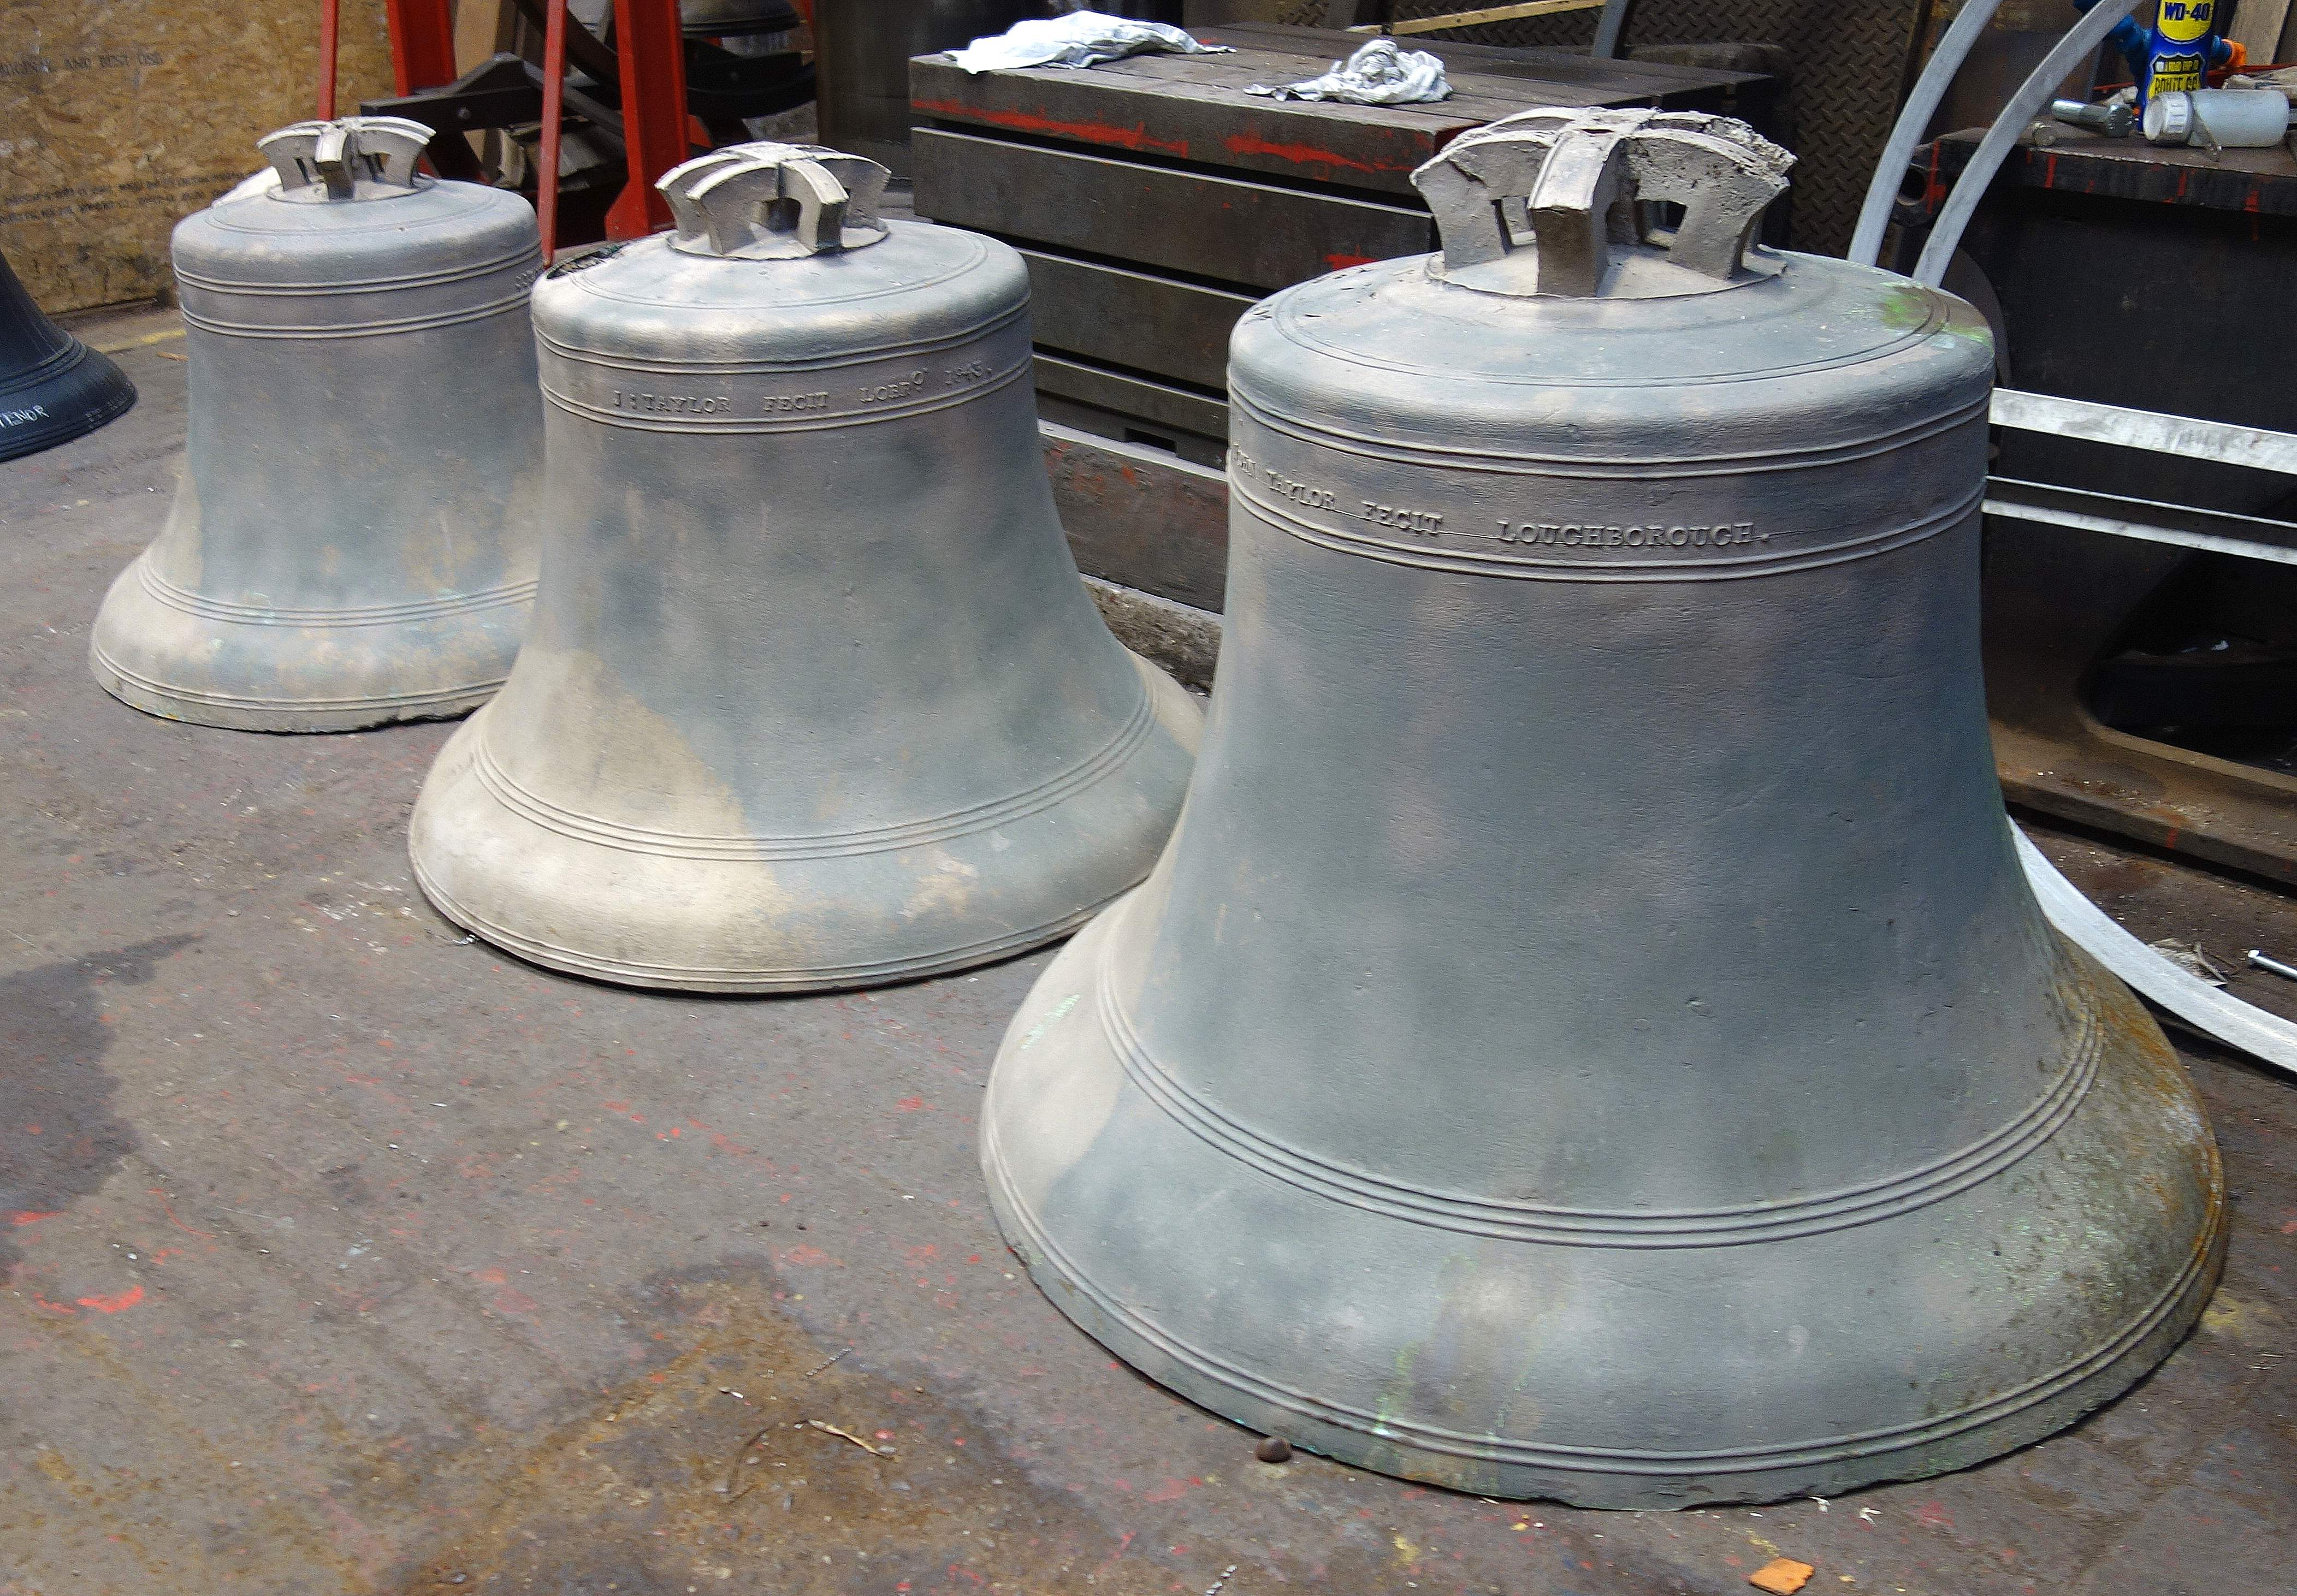 Three of the bells after cleaning.